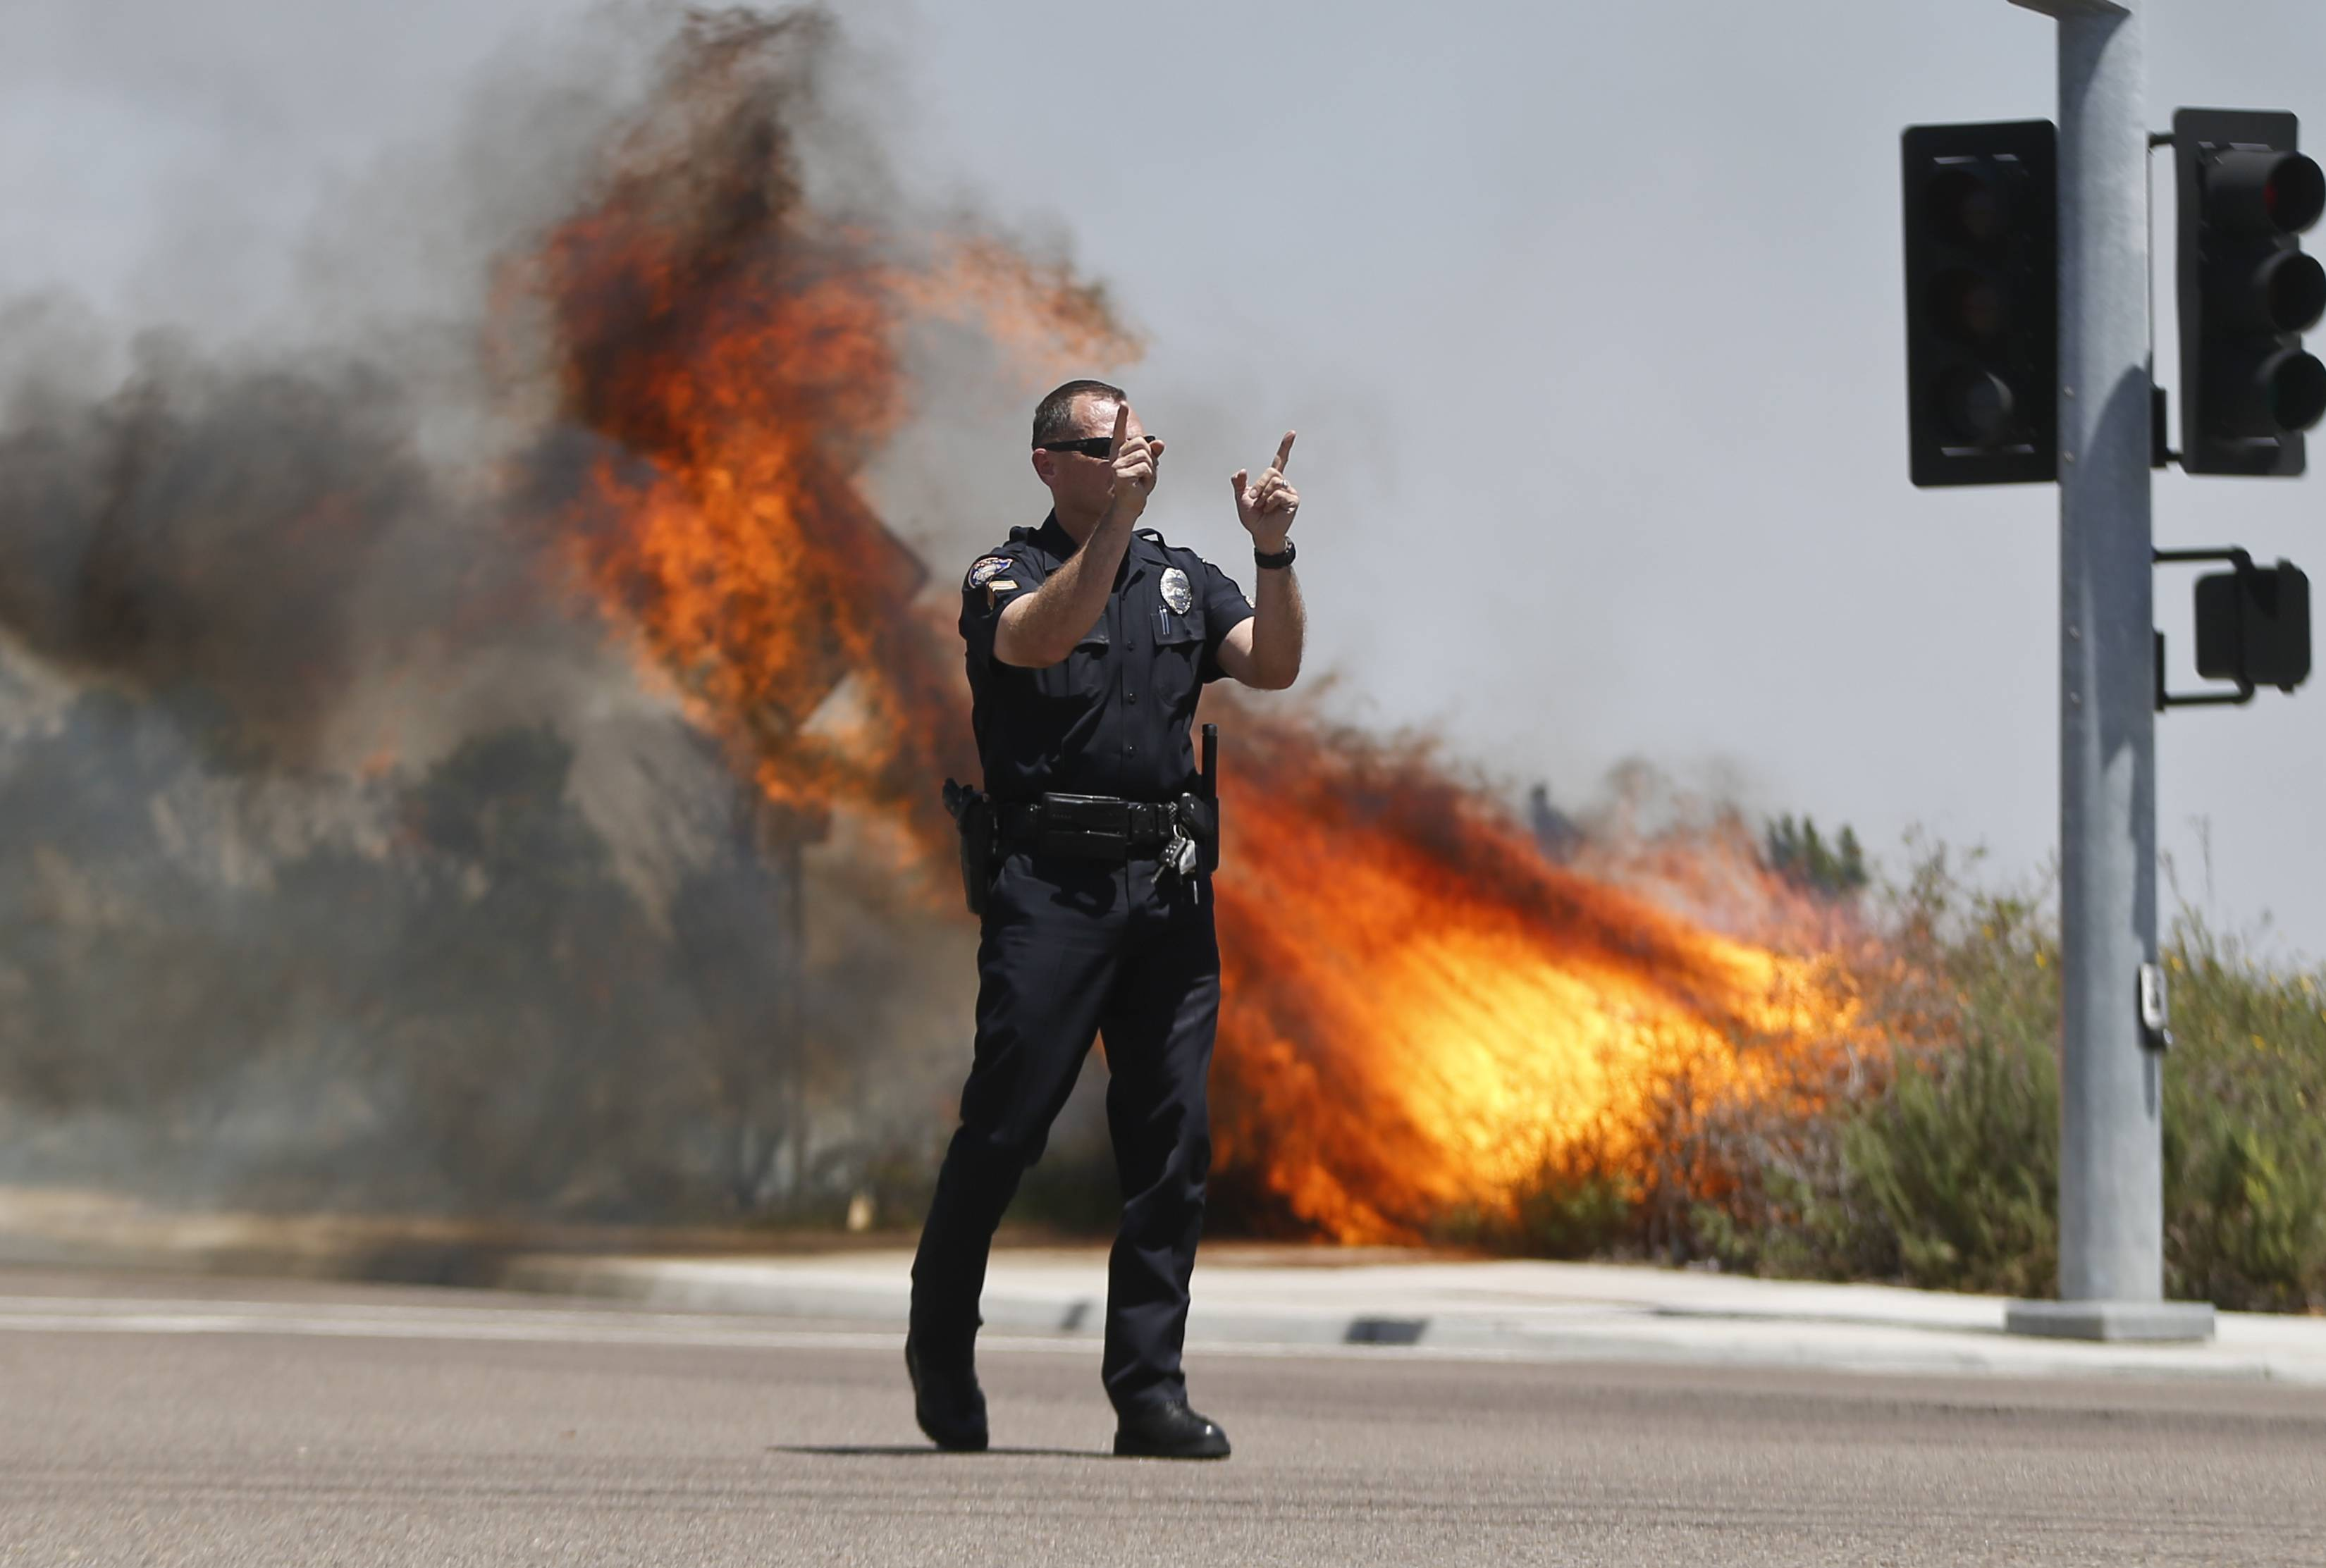 A police officer turns traffic away as flames leap behind him Wednesday in Carlsbad, Calif.